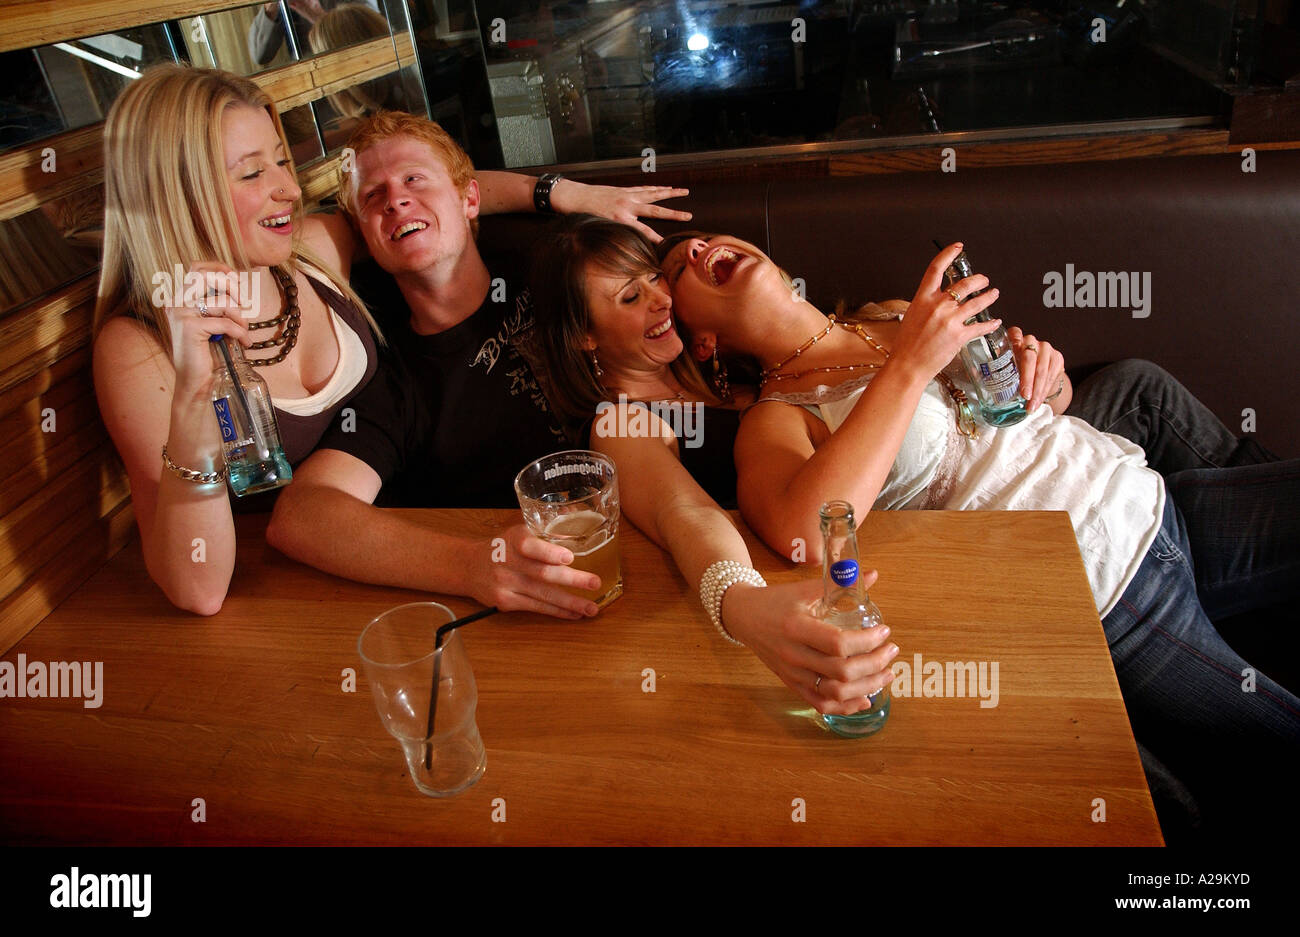 Drunk girl at bar